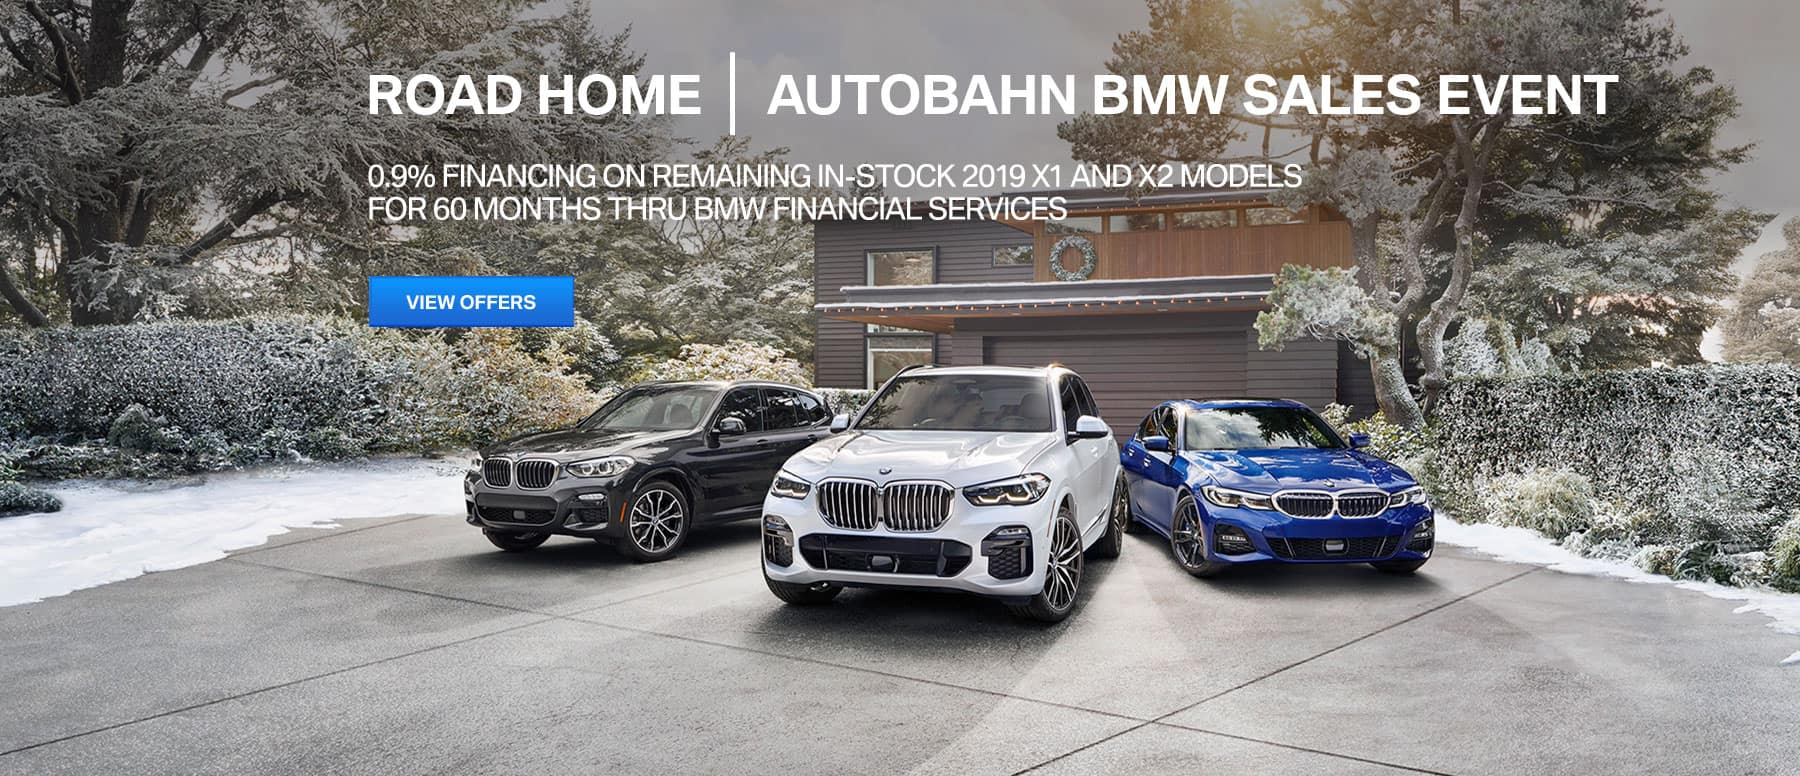 Autobahn BMW Fort Worth | Road Home BMW Sales Event